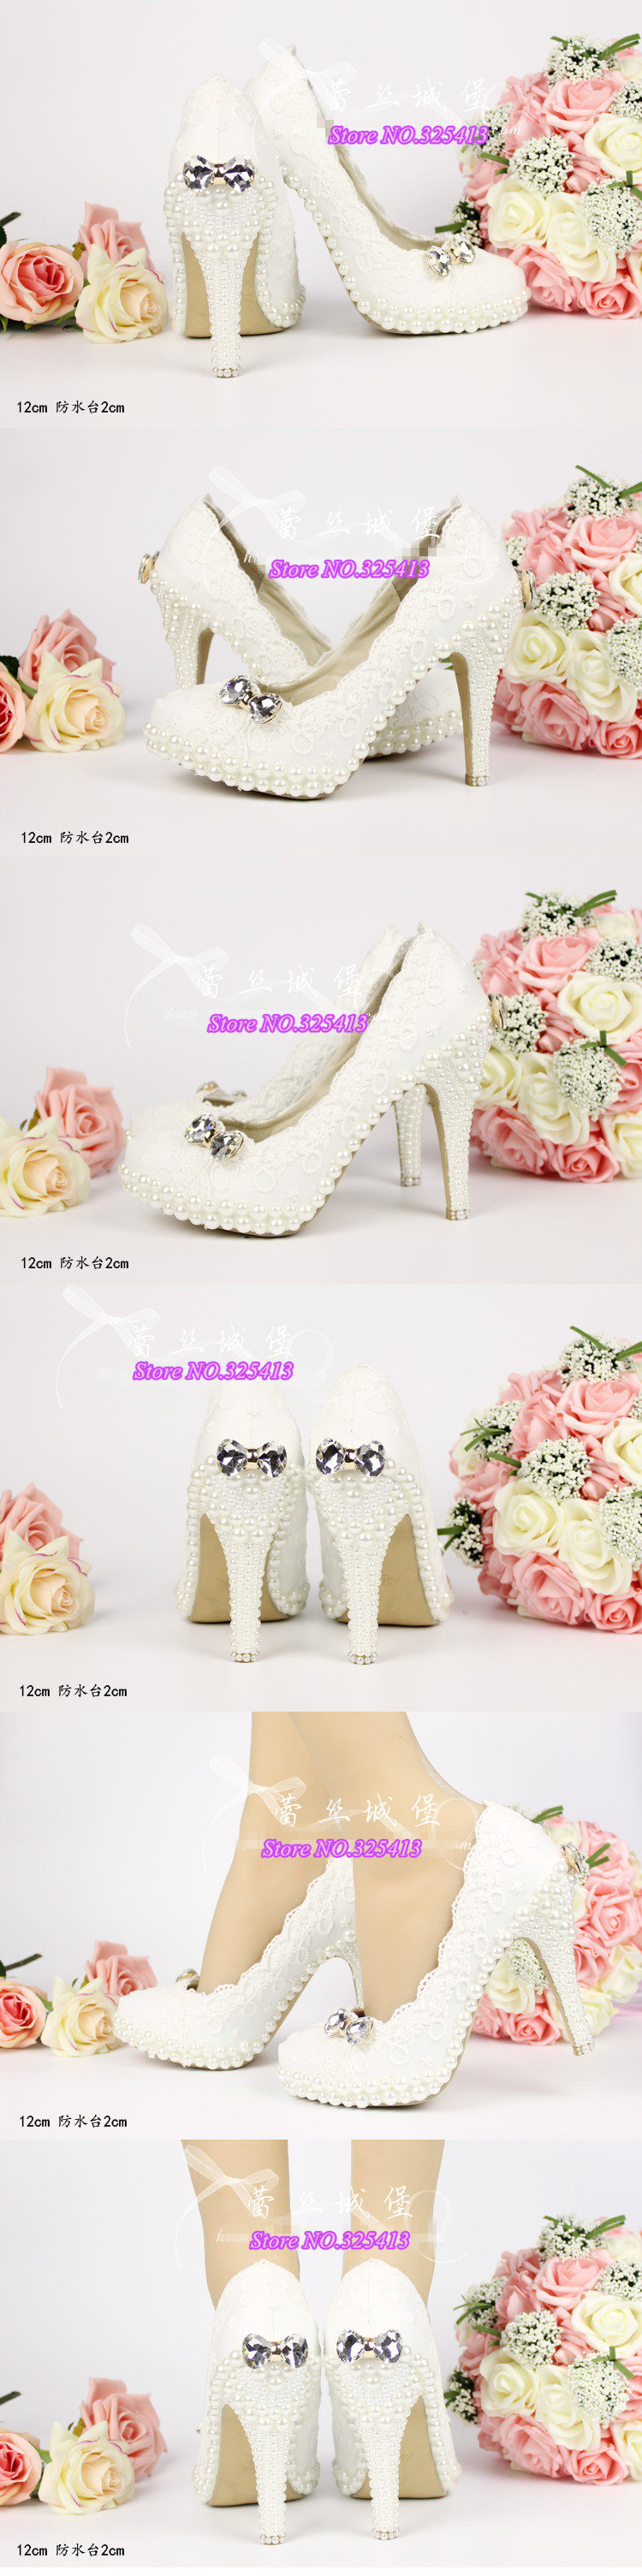 Spring and summer woman aesthetic crystal bow pearl shoes wedding shoes bridal white lace party shoe platform big size shoe